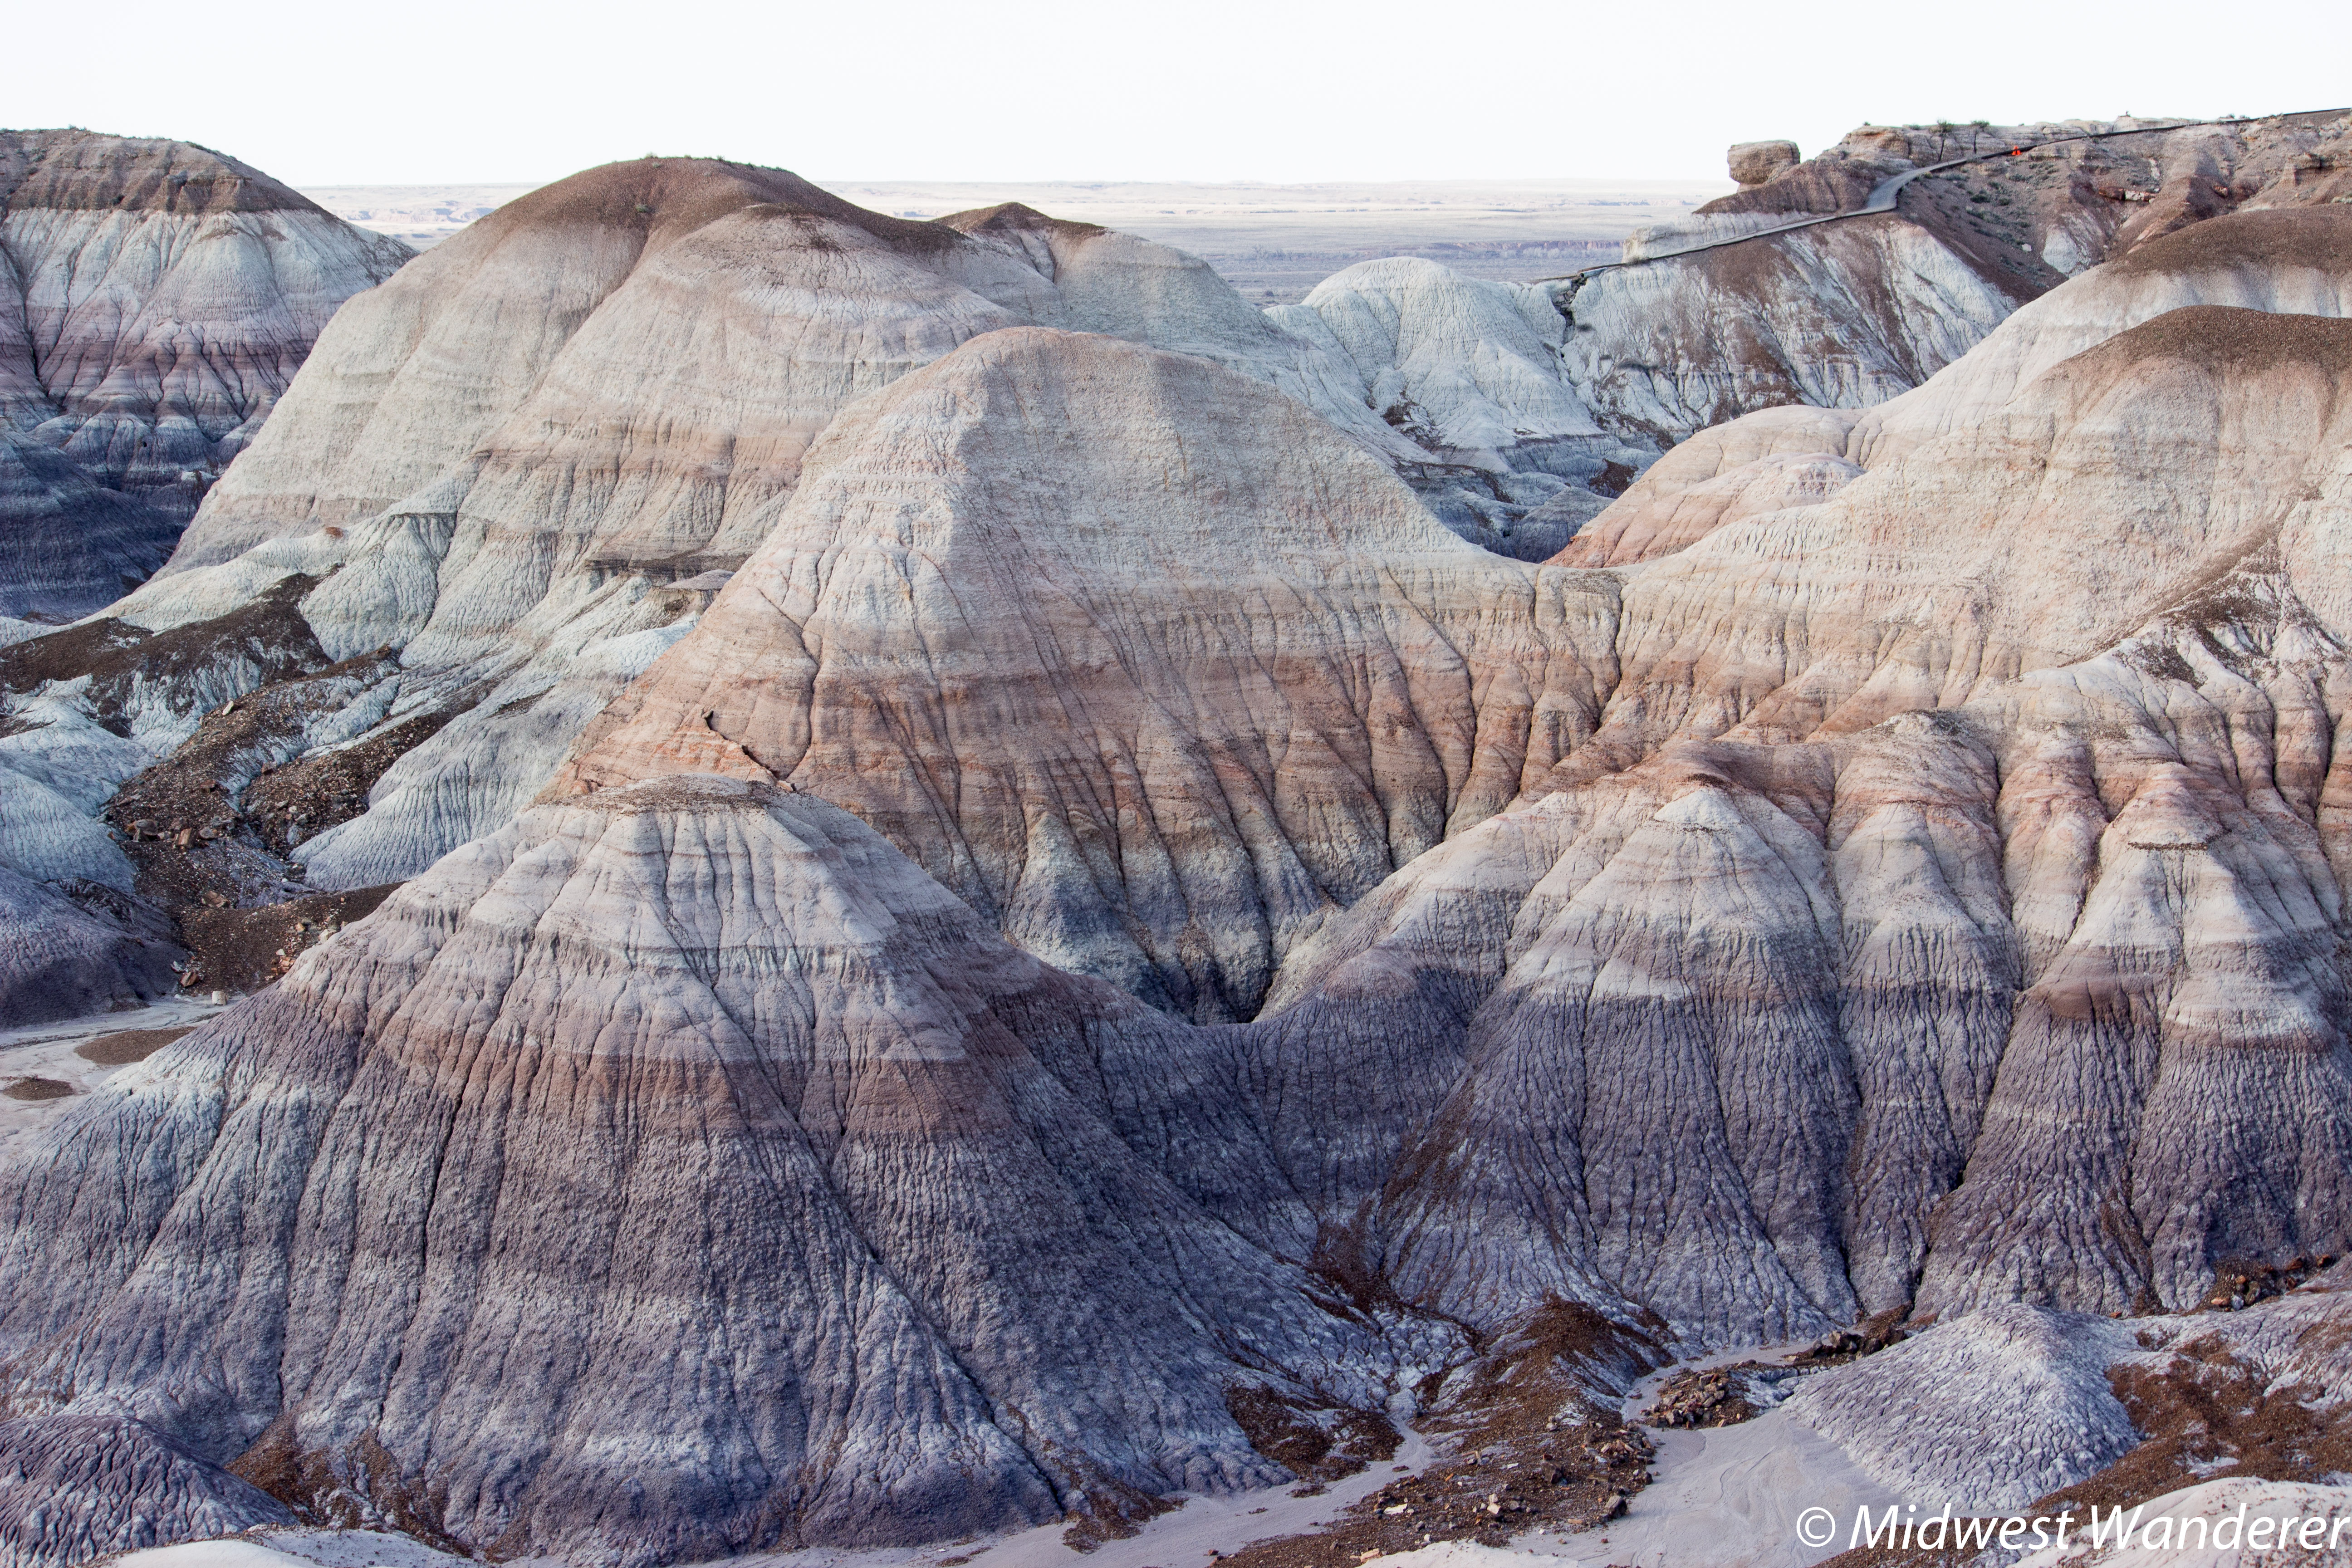 Driving through Petrified Forest National Park